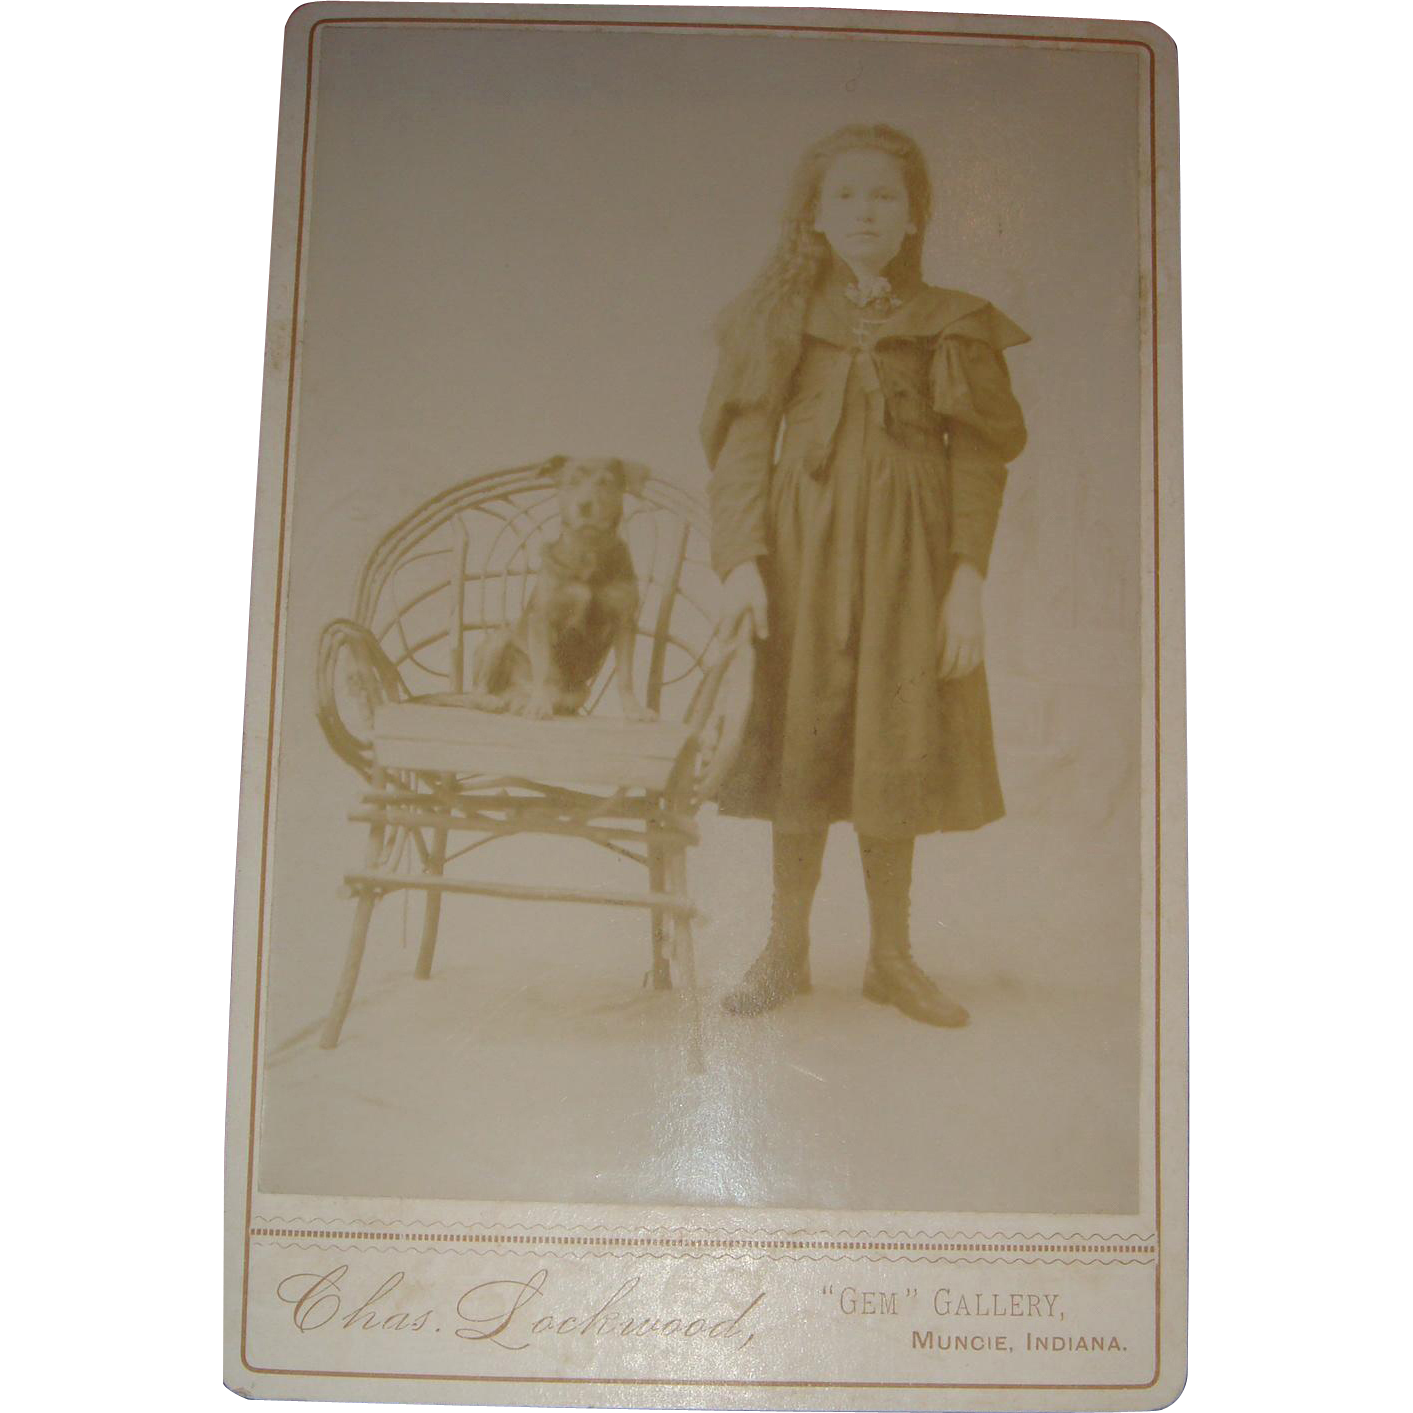 Little Girl and Her Dog Twig Chair Cabinet Card Muncie, Indiana